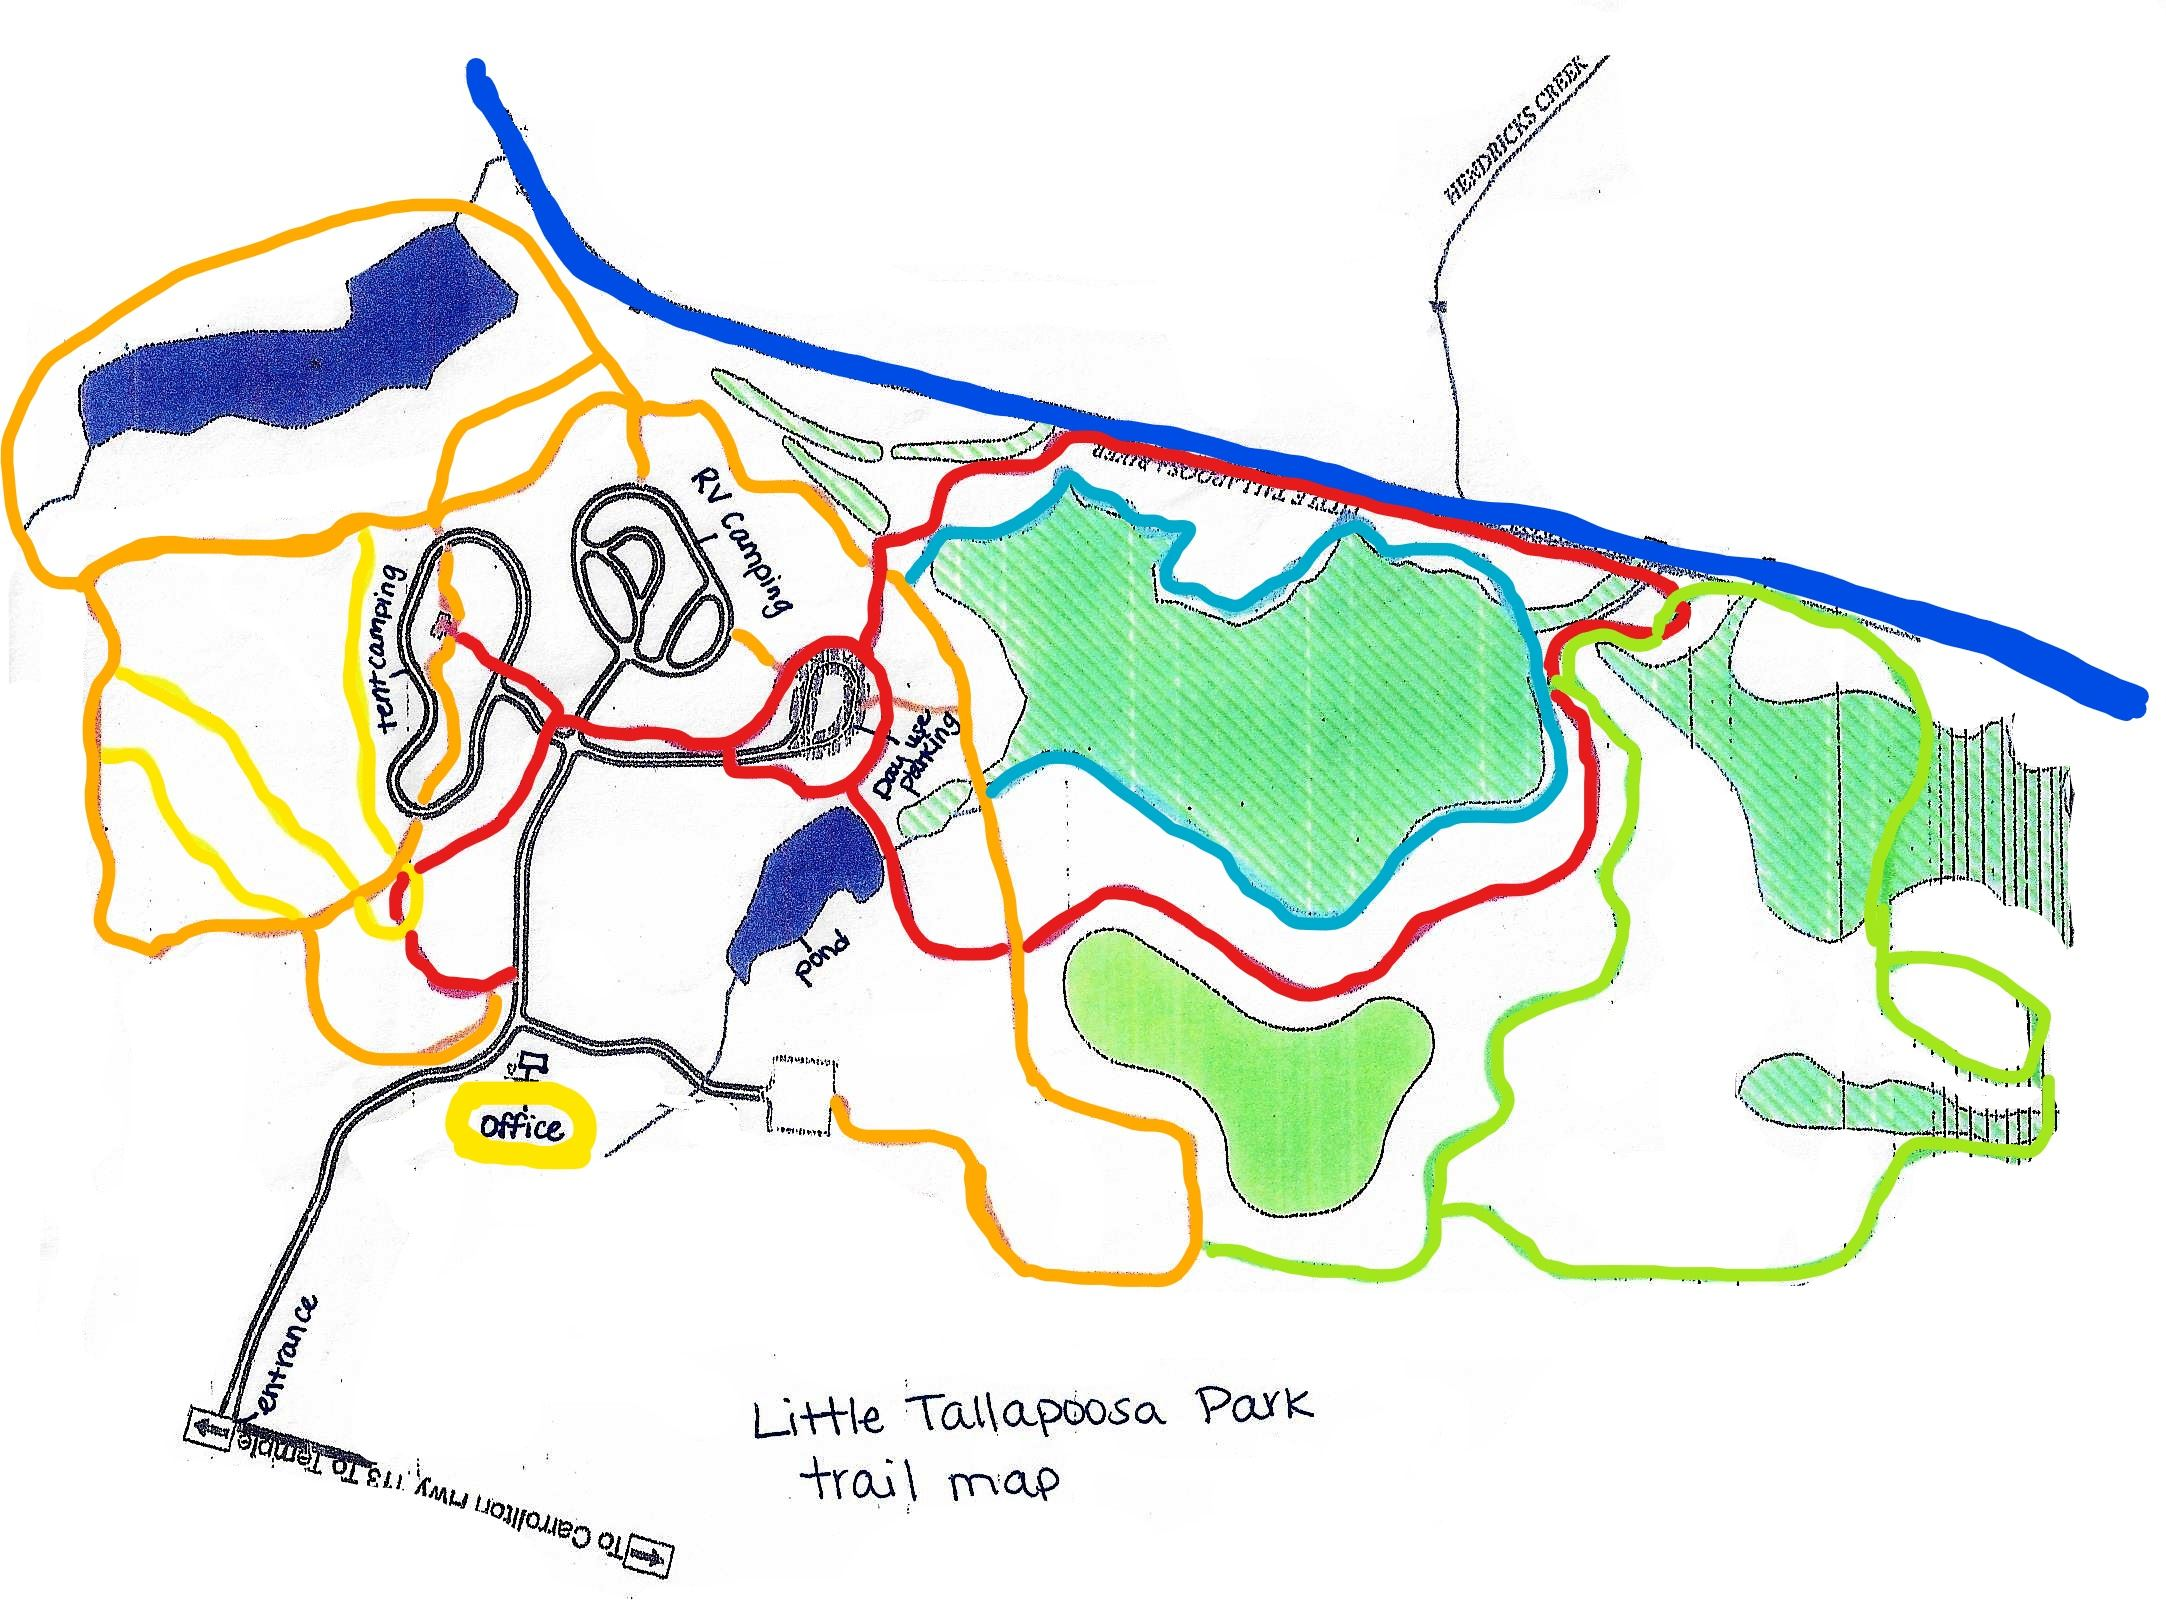 LTP trail map_LI